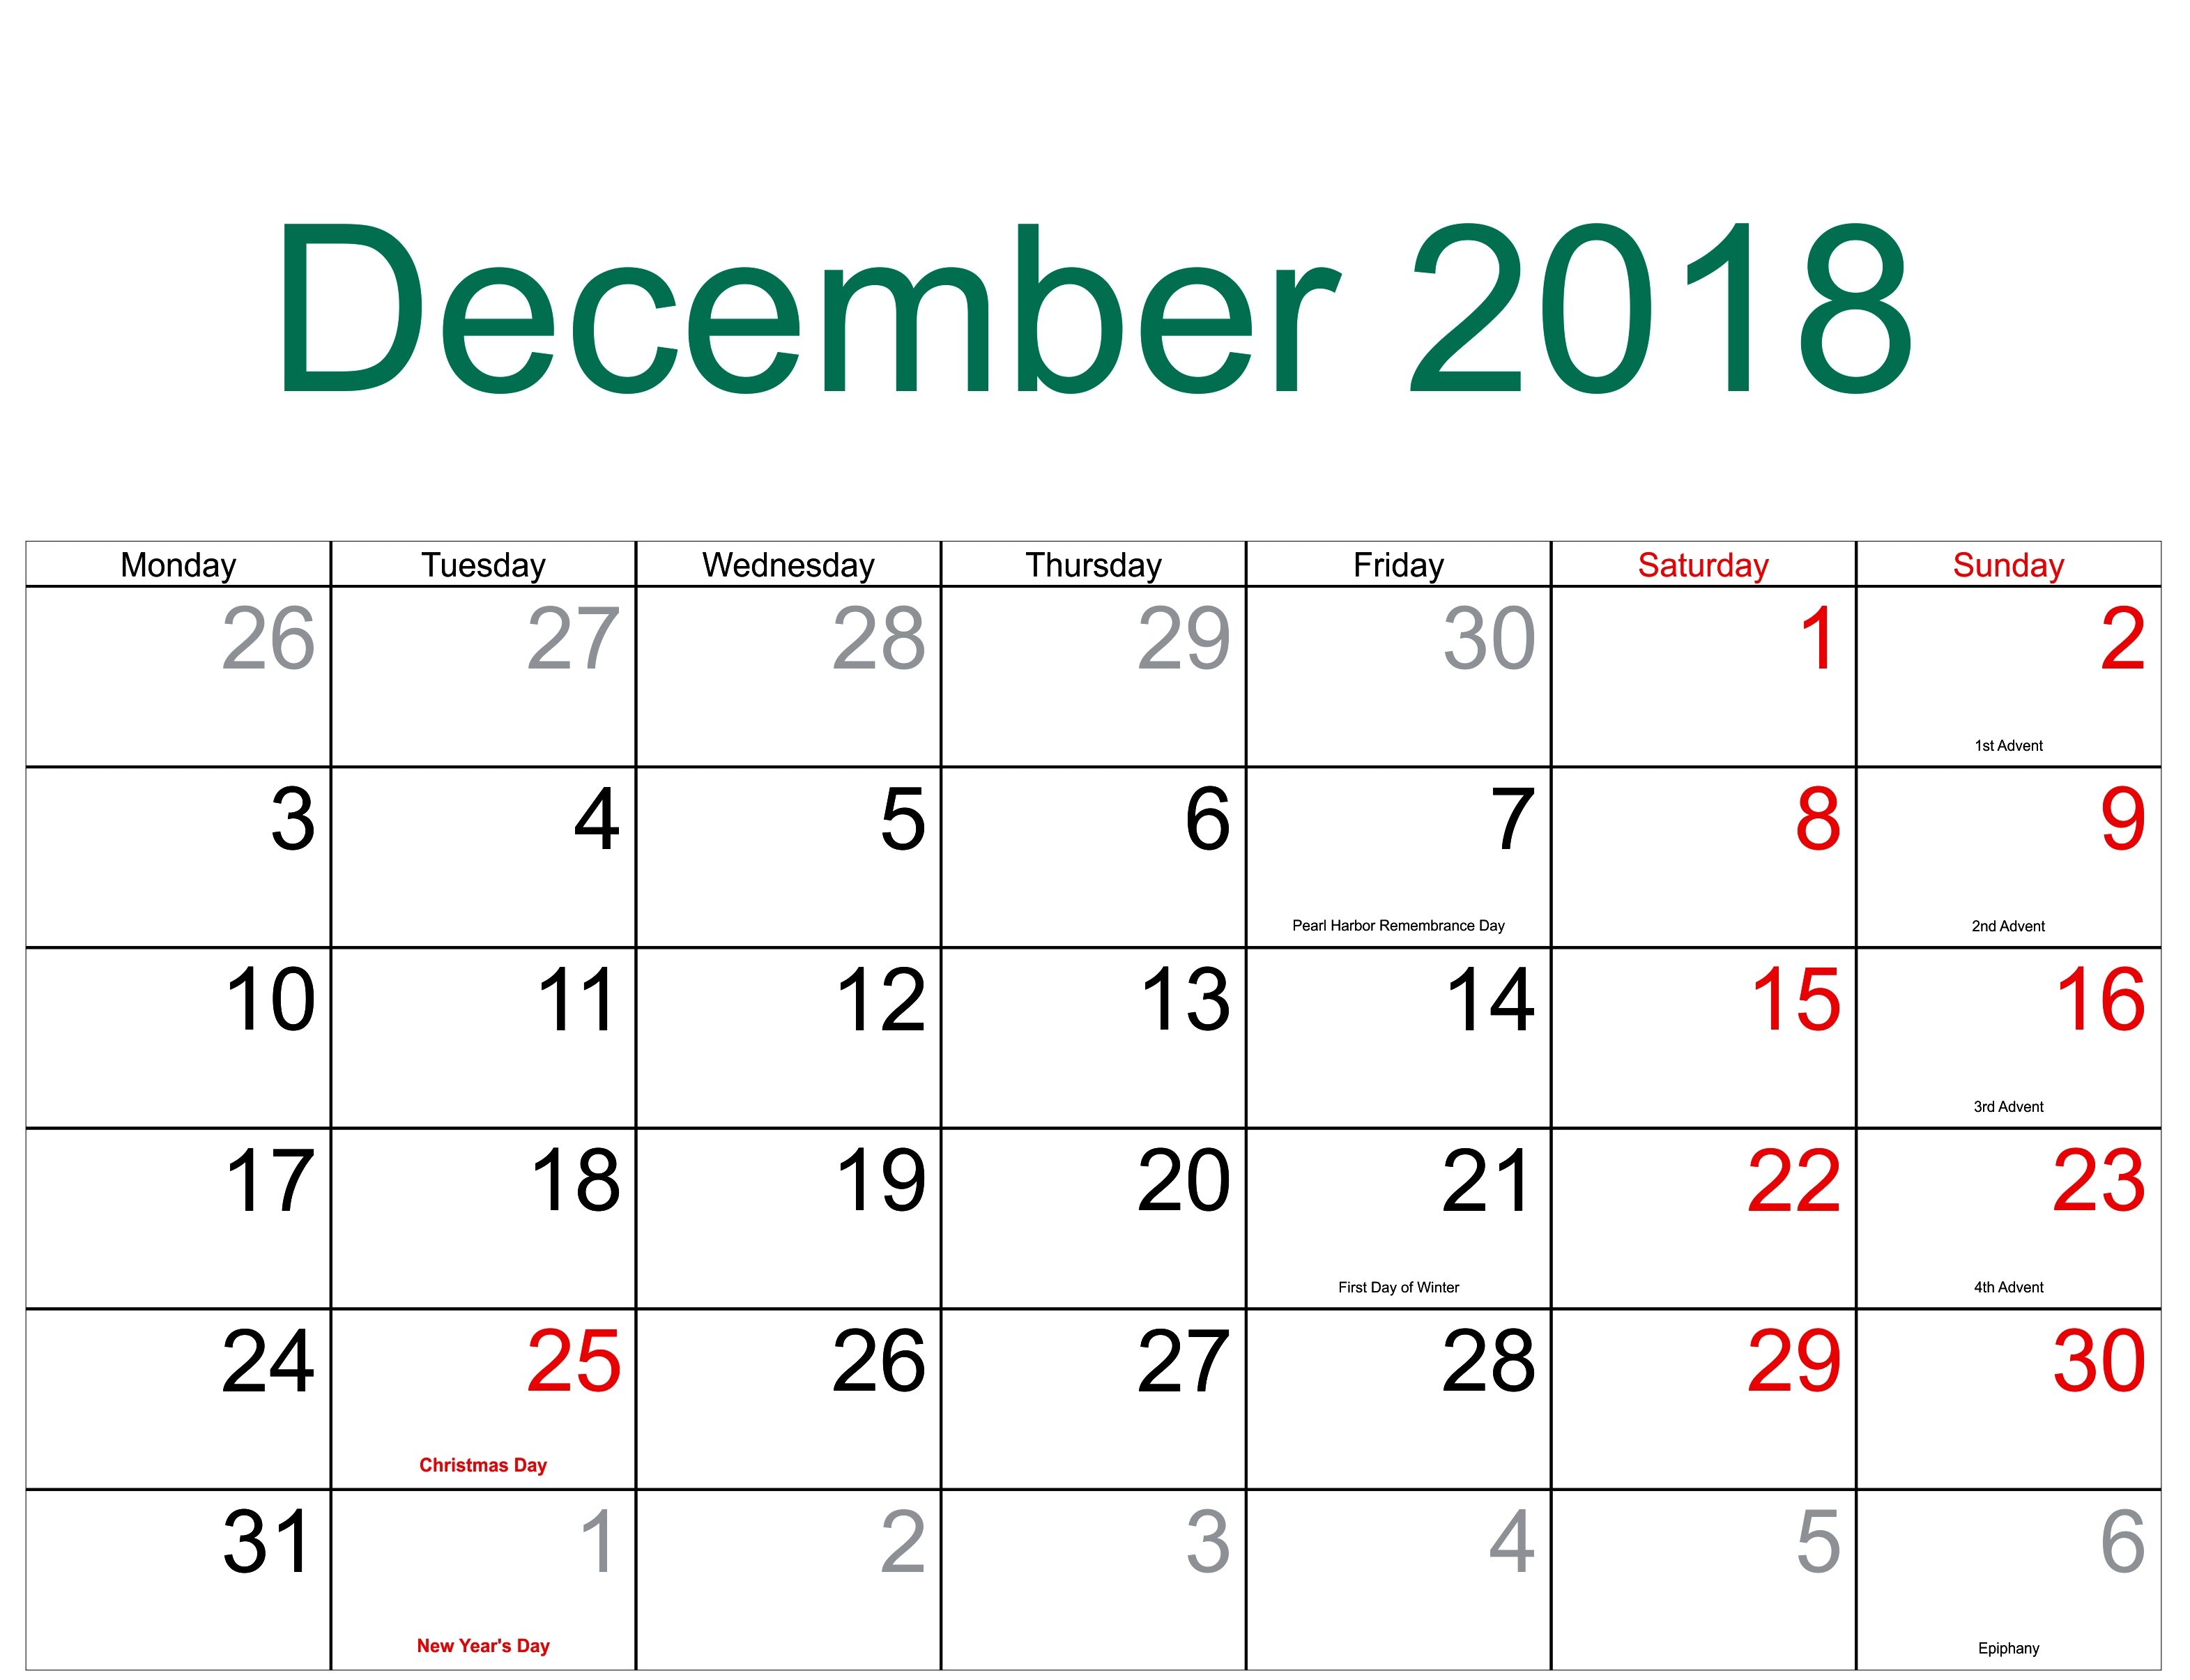 Take Daily Catholic Calendar December 2019 ⋆ The Best